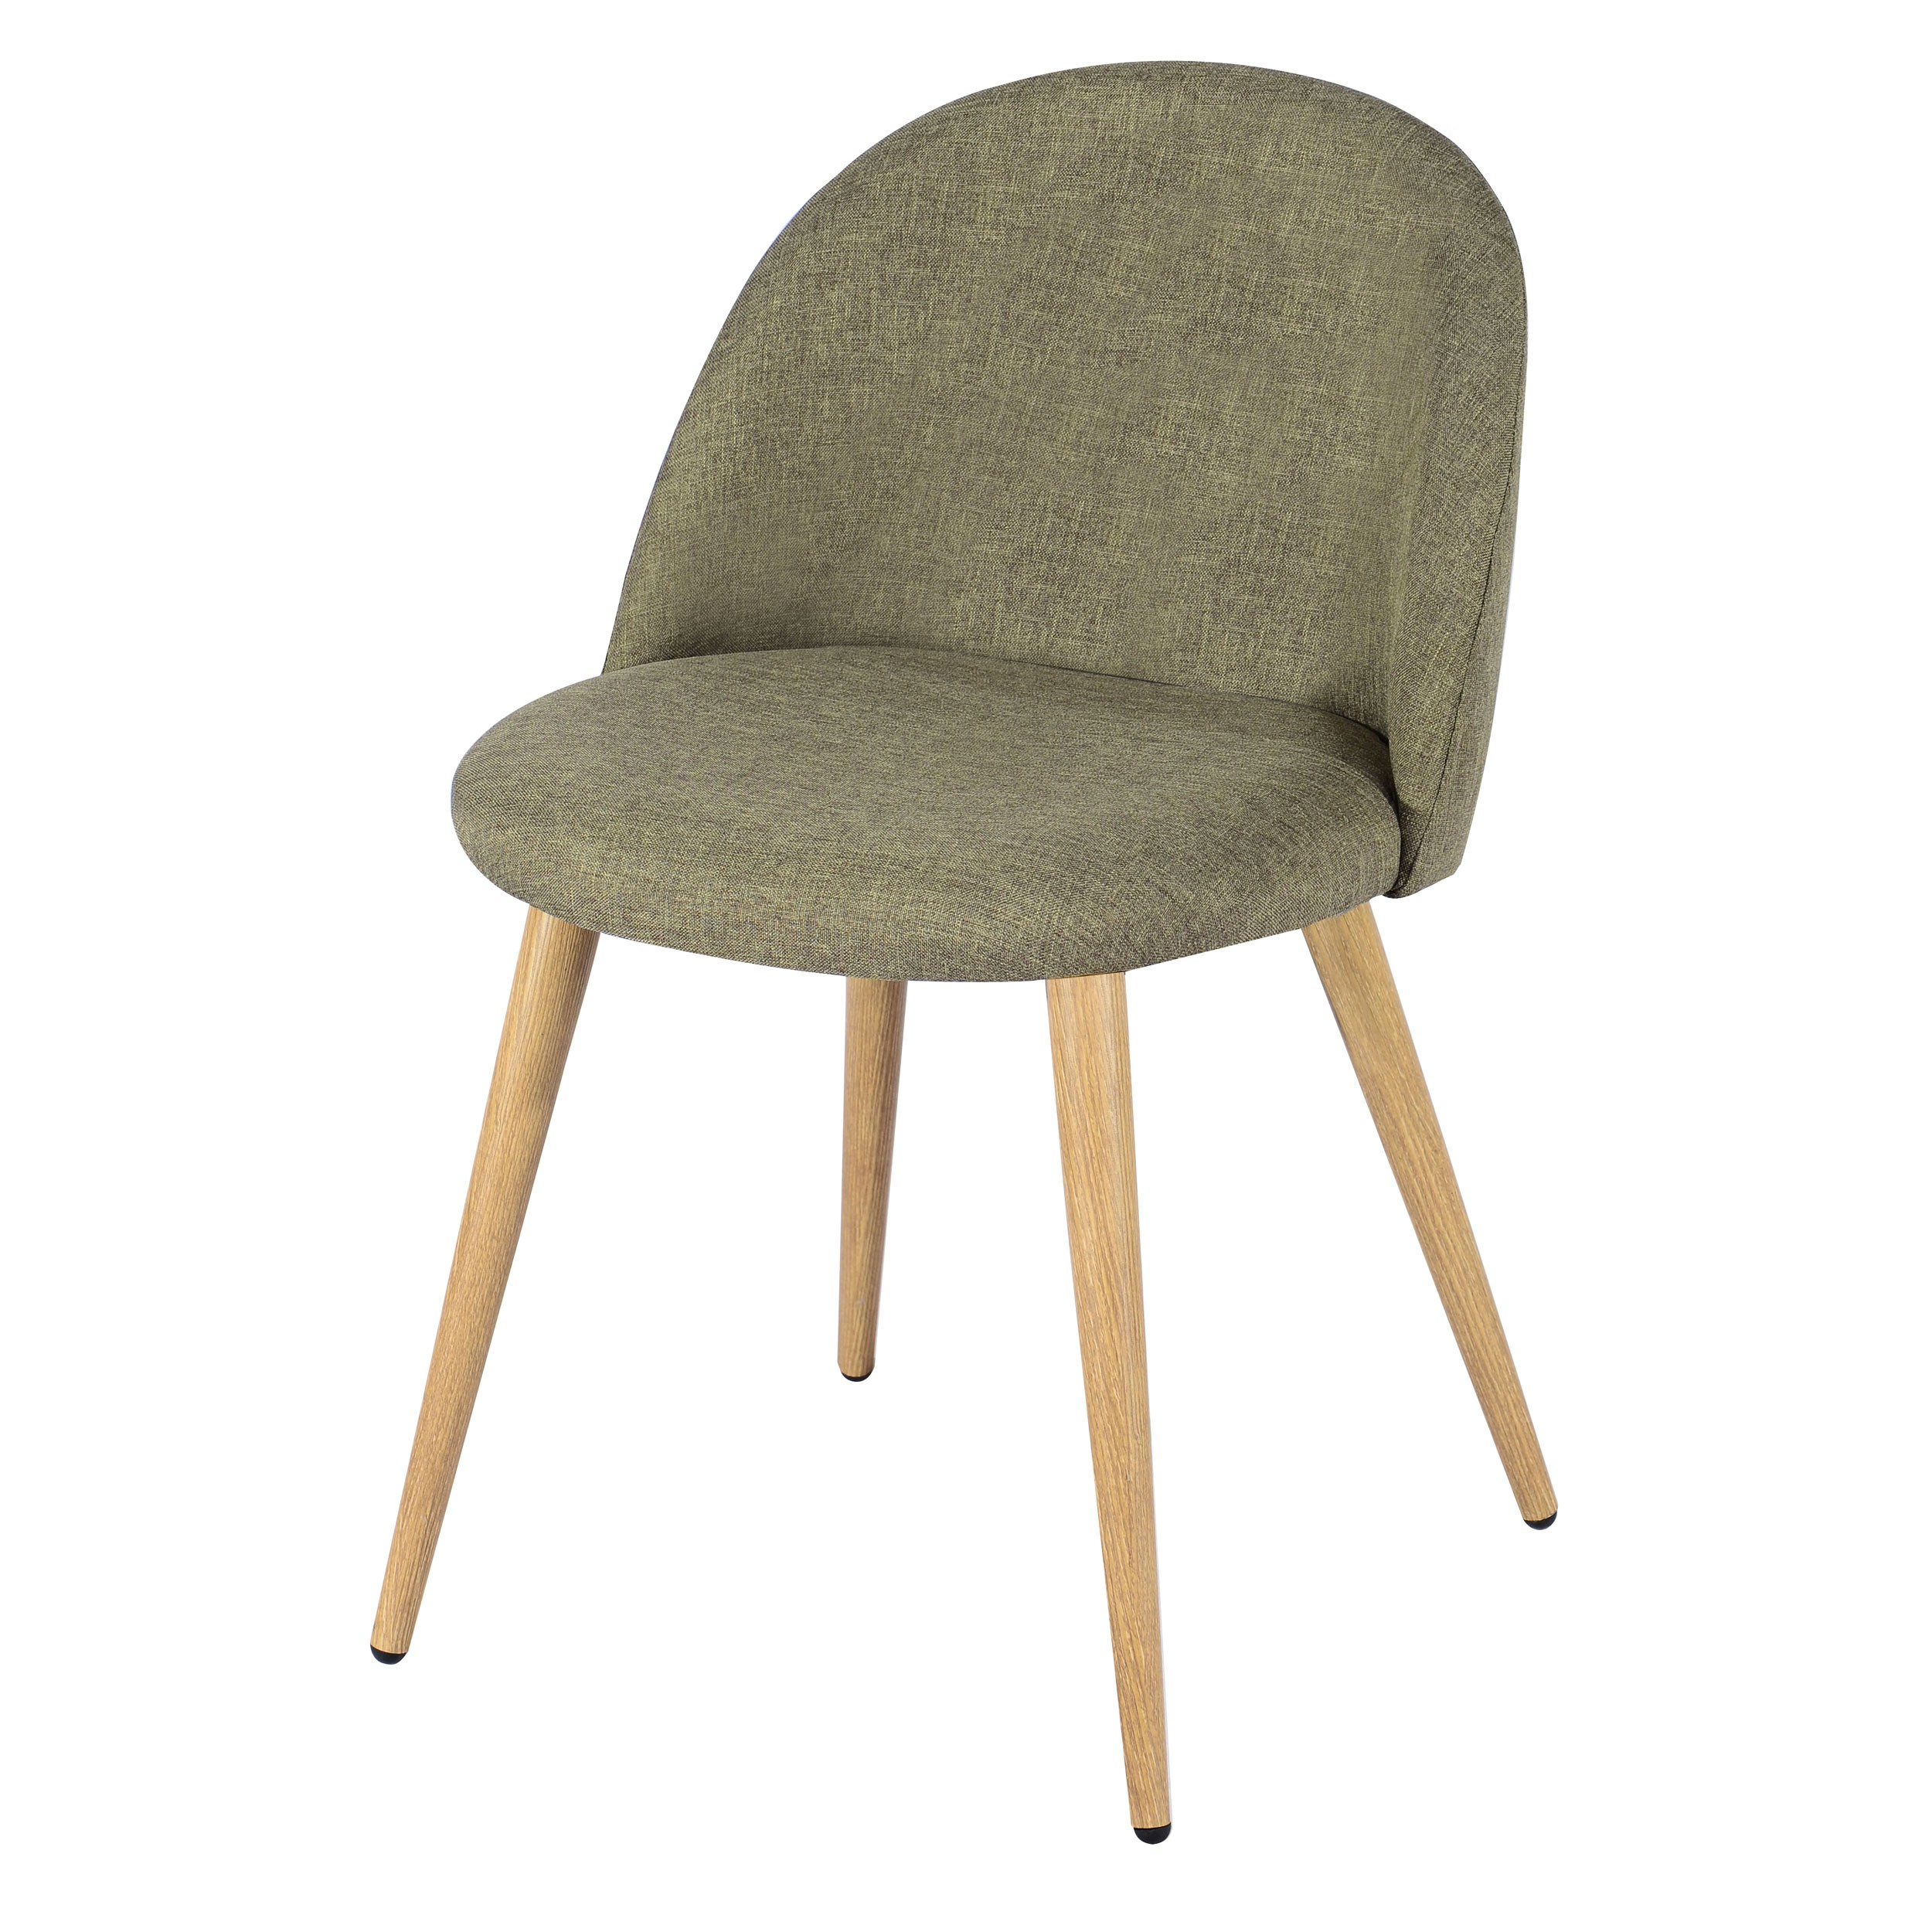 acheter chaise scandinave taupe pieds bois